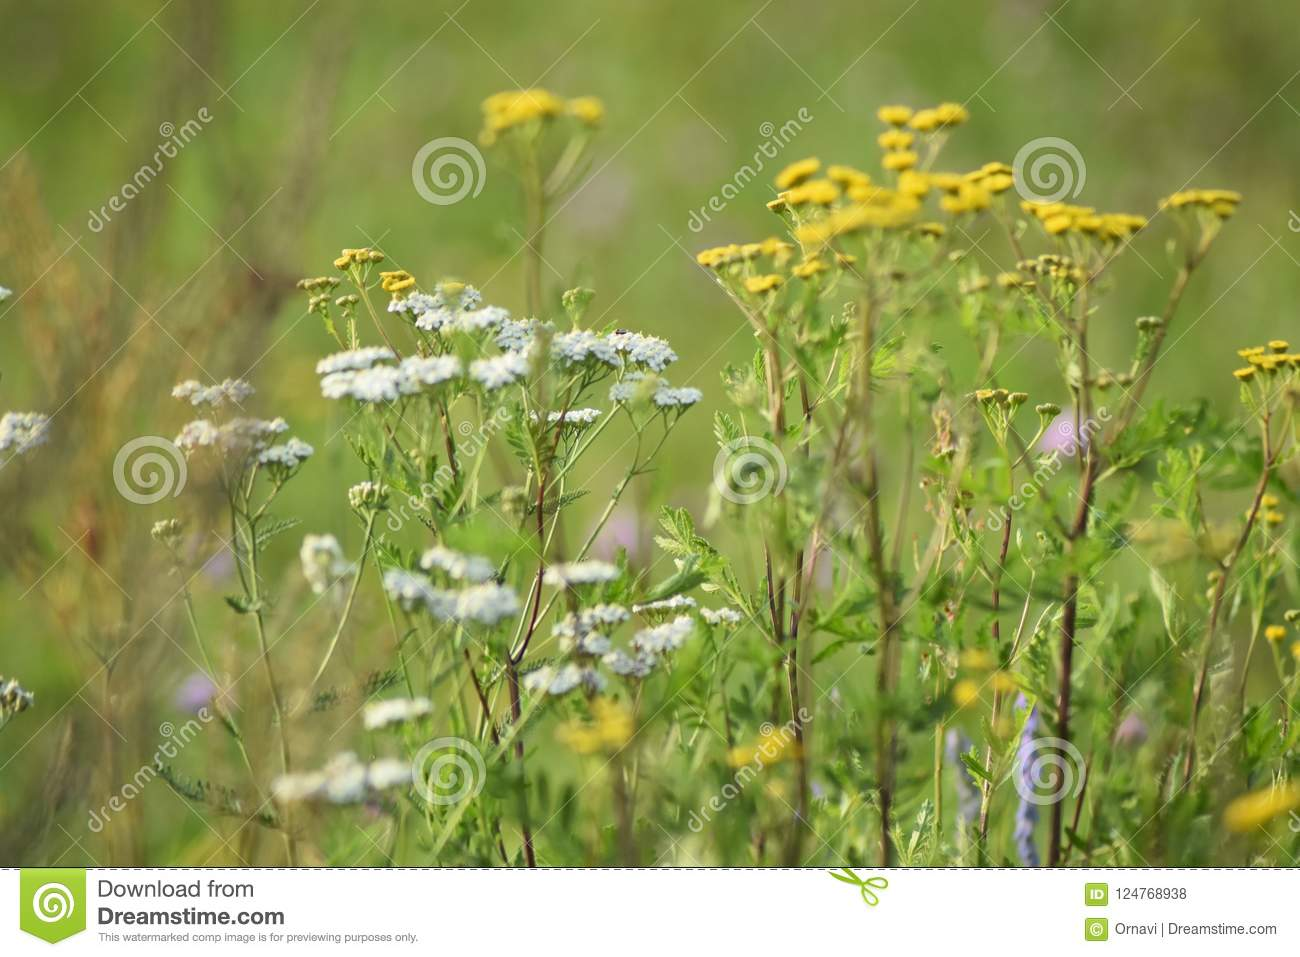 Green meadow width yellow and white flowers. The rays of the sun brighten the meadow.